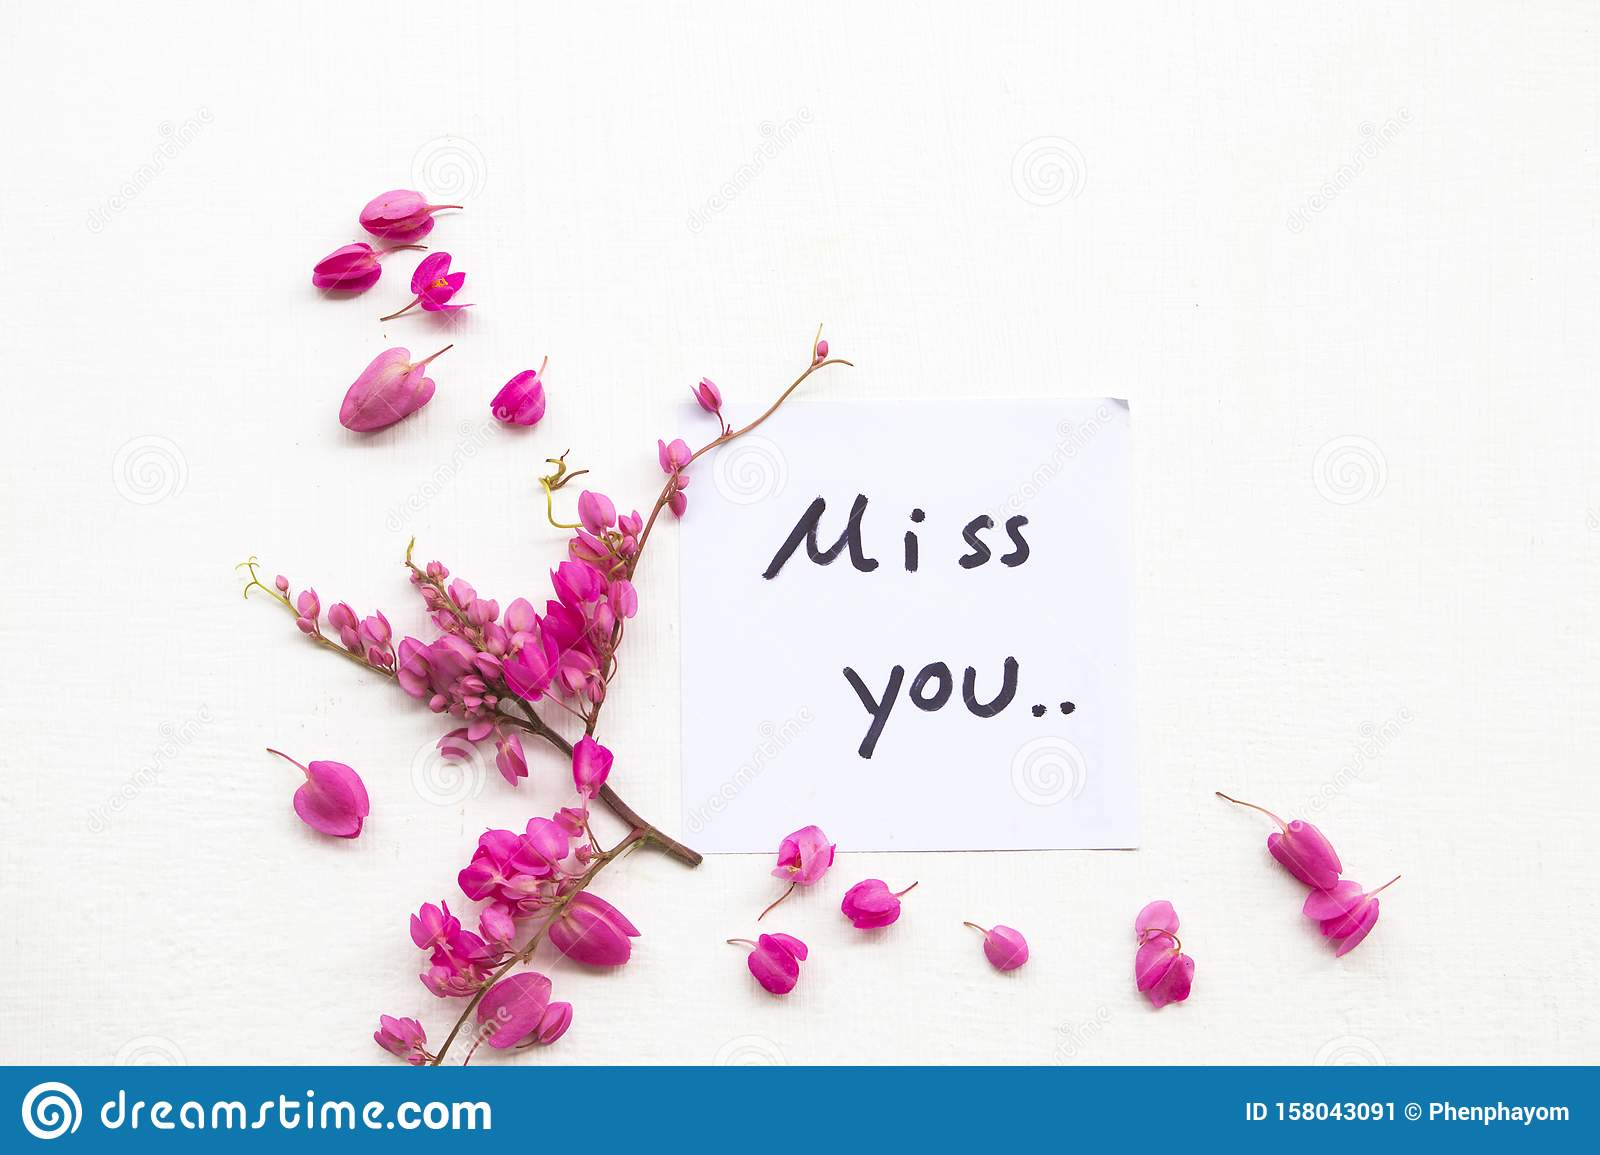 Miss You Card Flowers Photos Free Royalty Free Stock Photos From Dreamstime